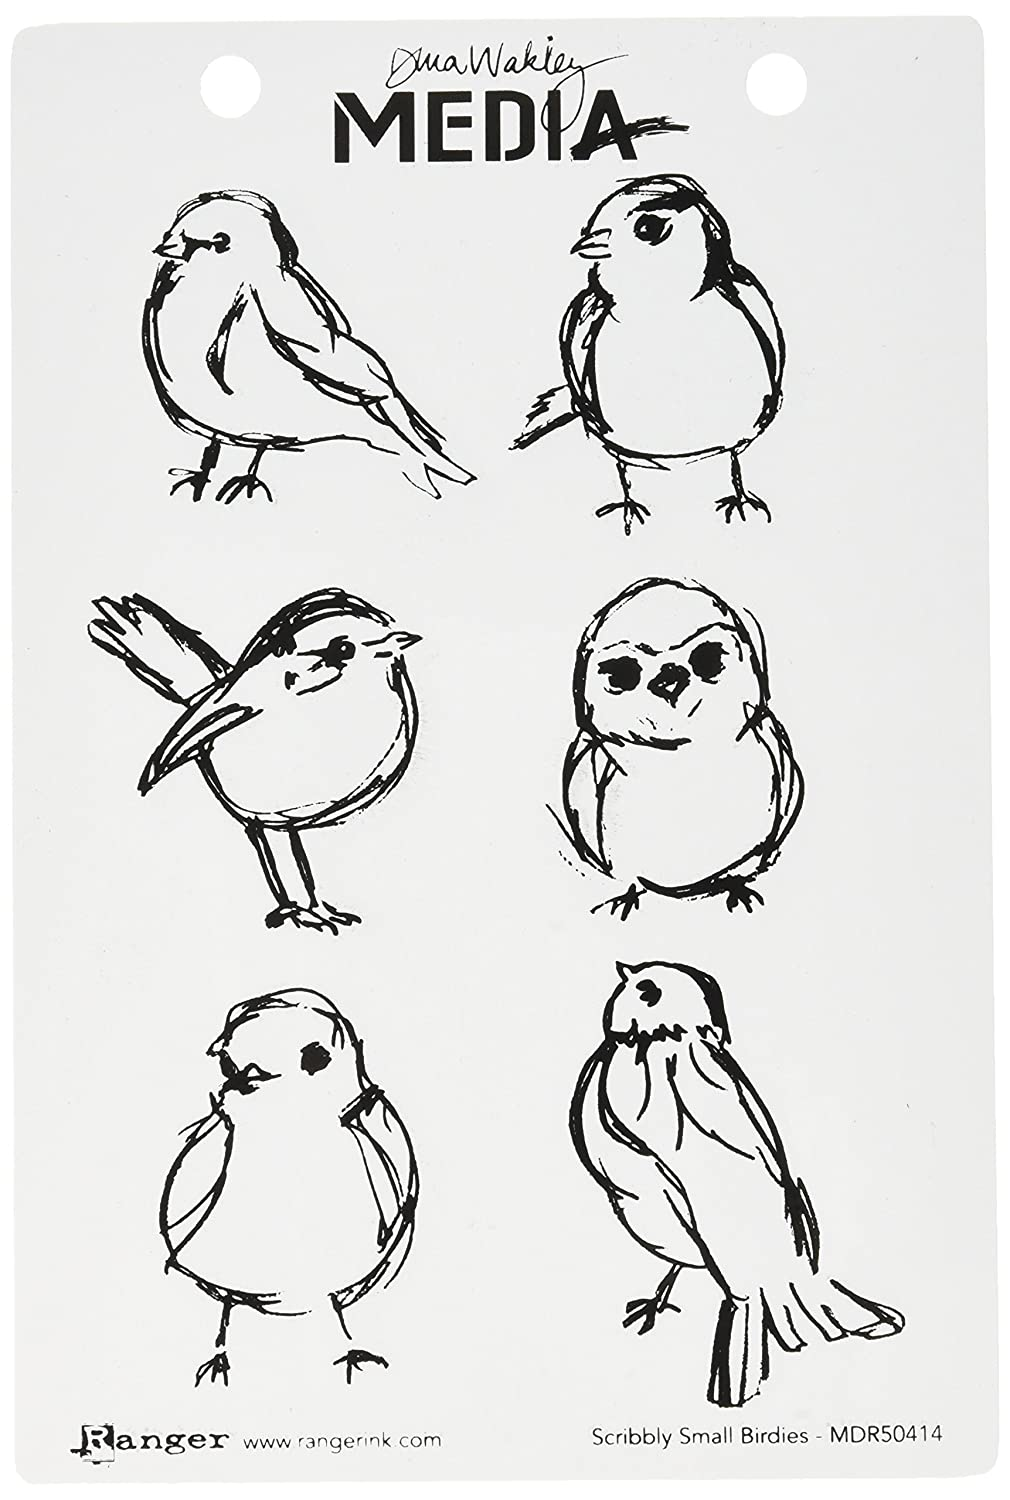 6 by 9 Clear Ranger MDR50414 Scribbly Birdies Dina Wakley Media Cling Stamps